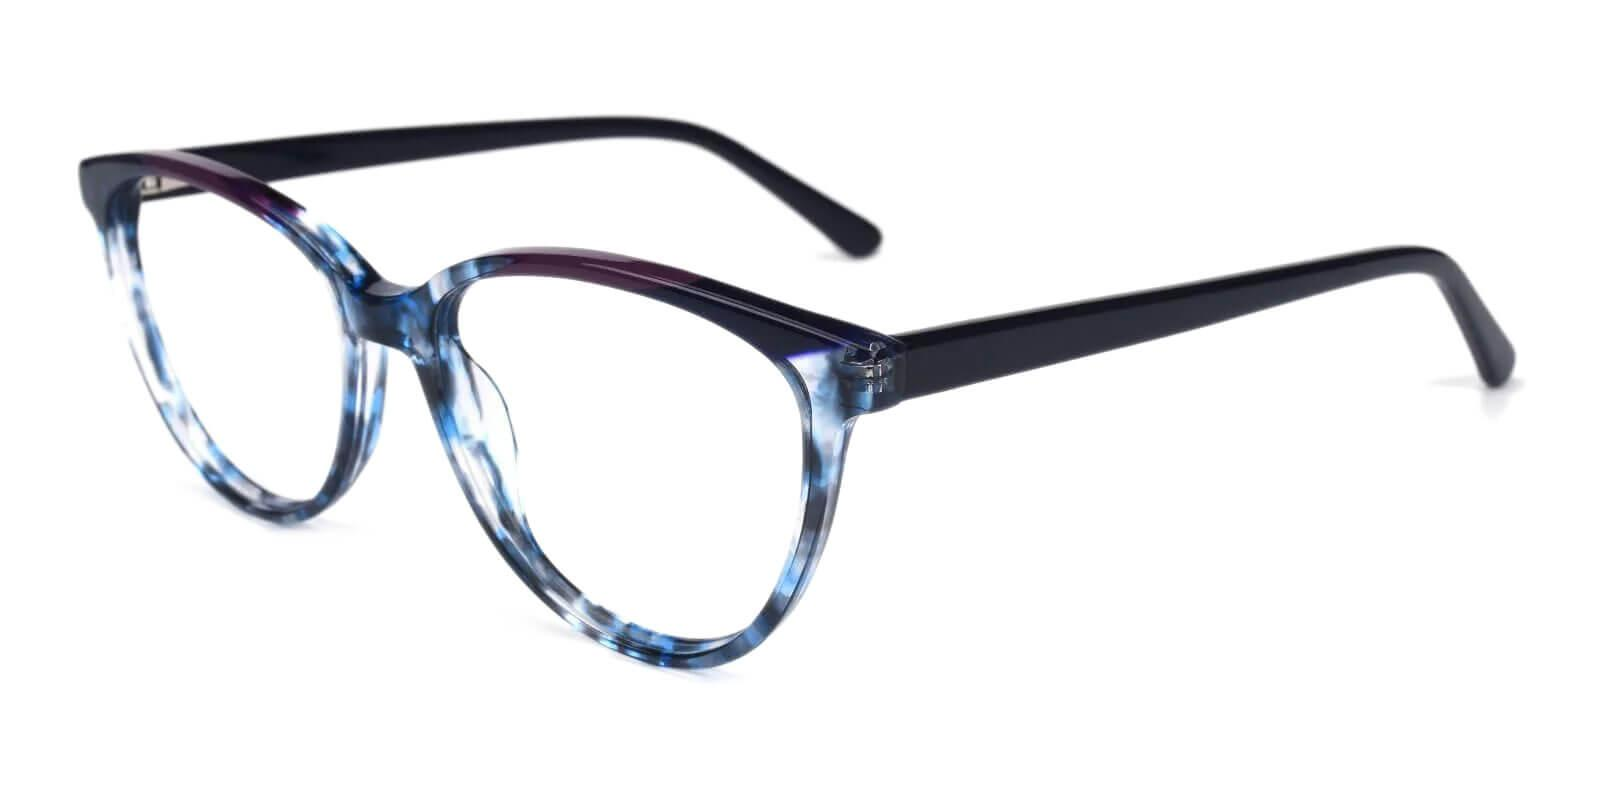 Joanne Striped Acetate Eyeglasses , SpringHinges , UniversalBridgeFit Frames from ABBE Glasses